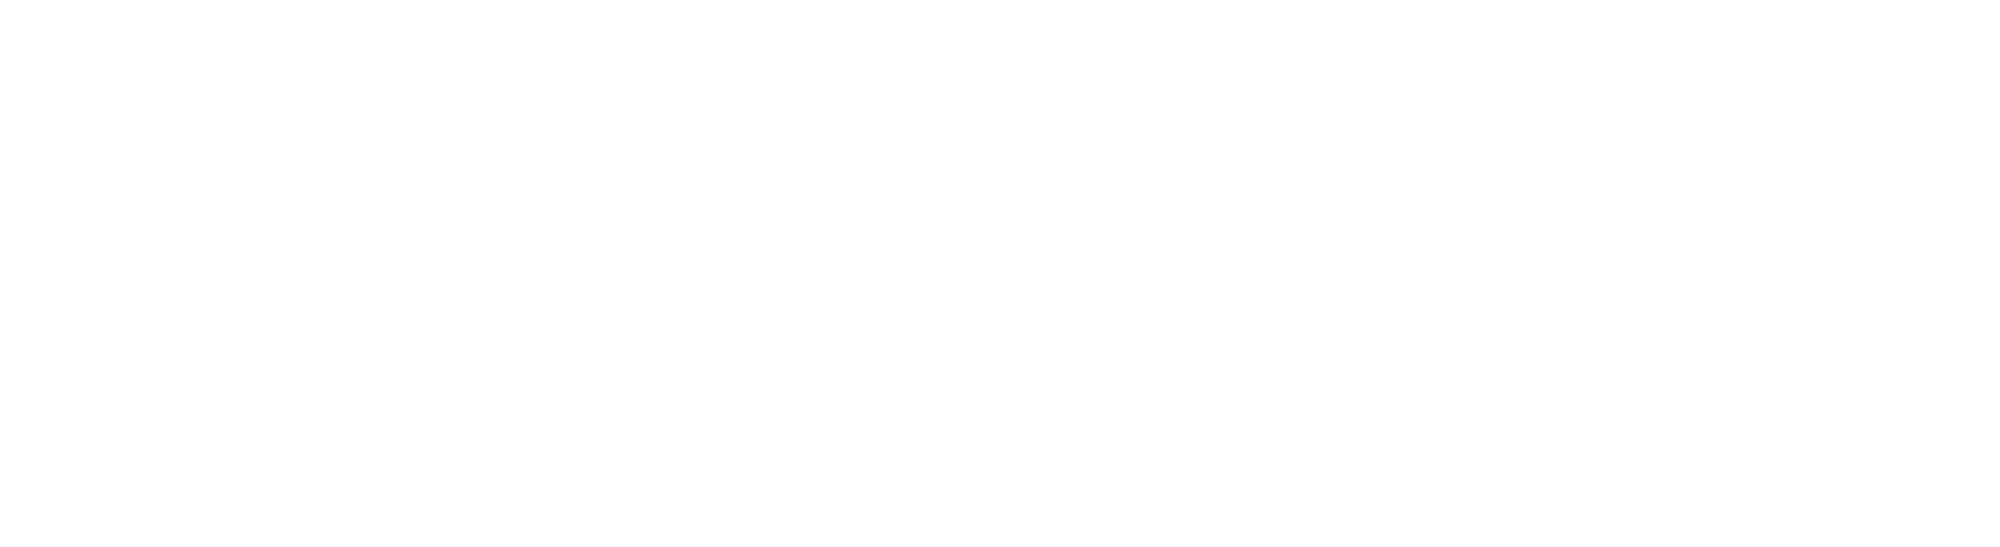 Carve the Runes Then Be Content With Silence